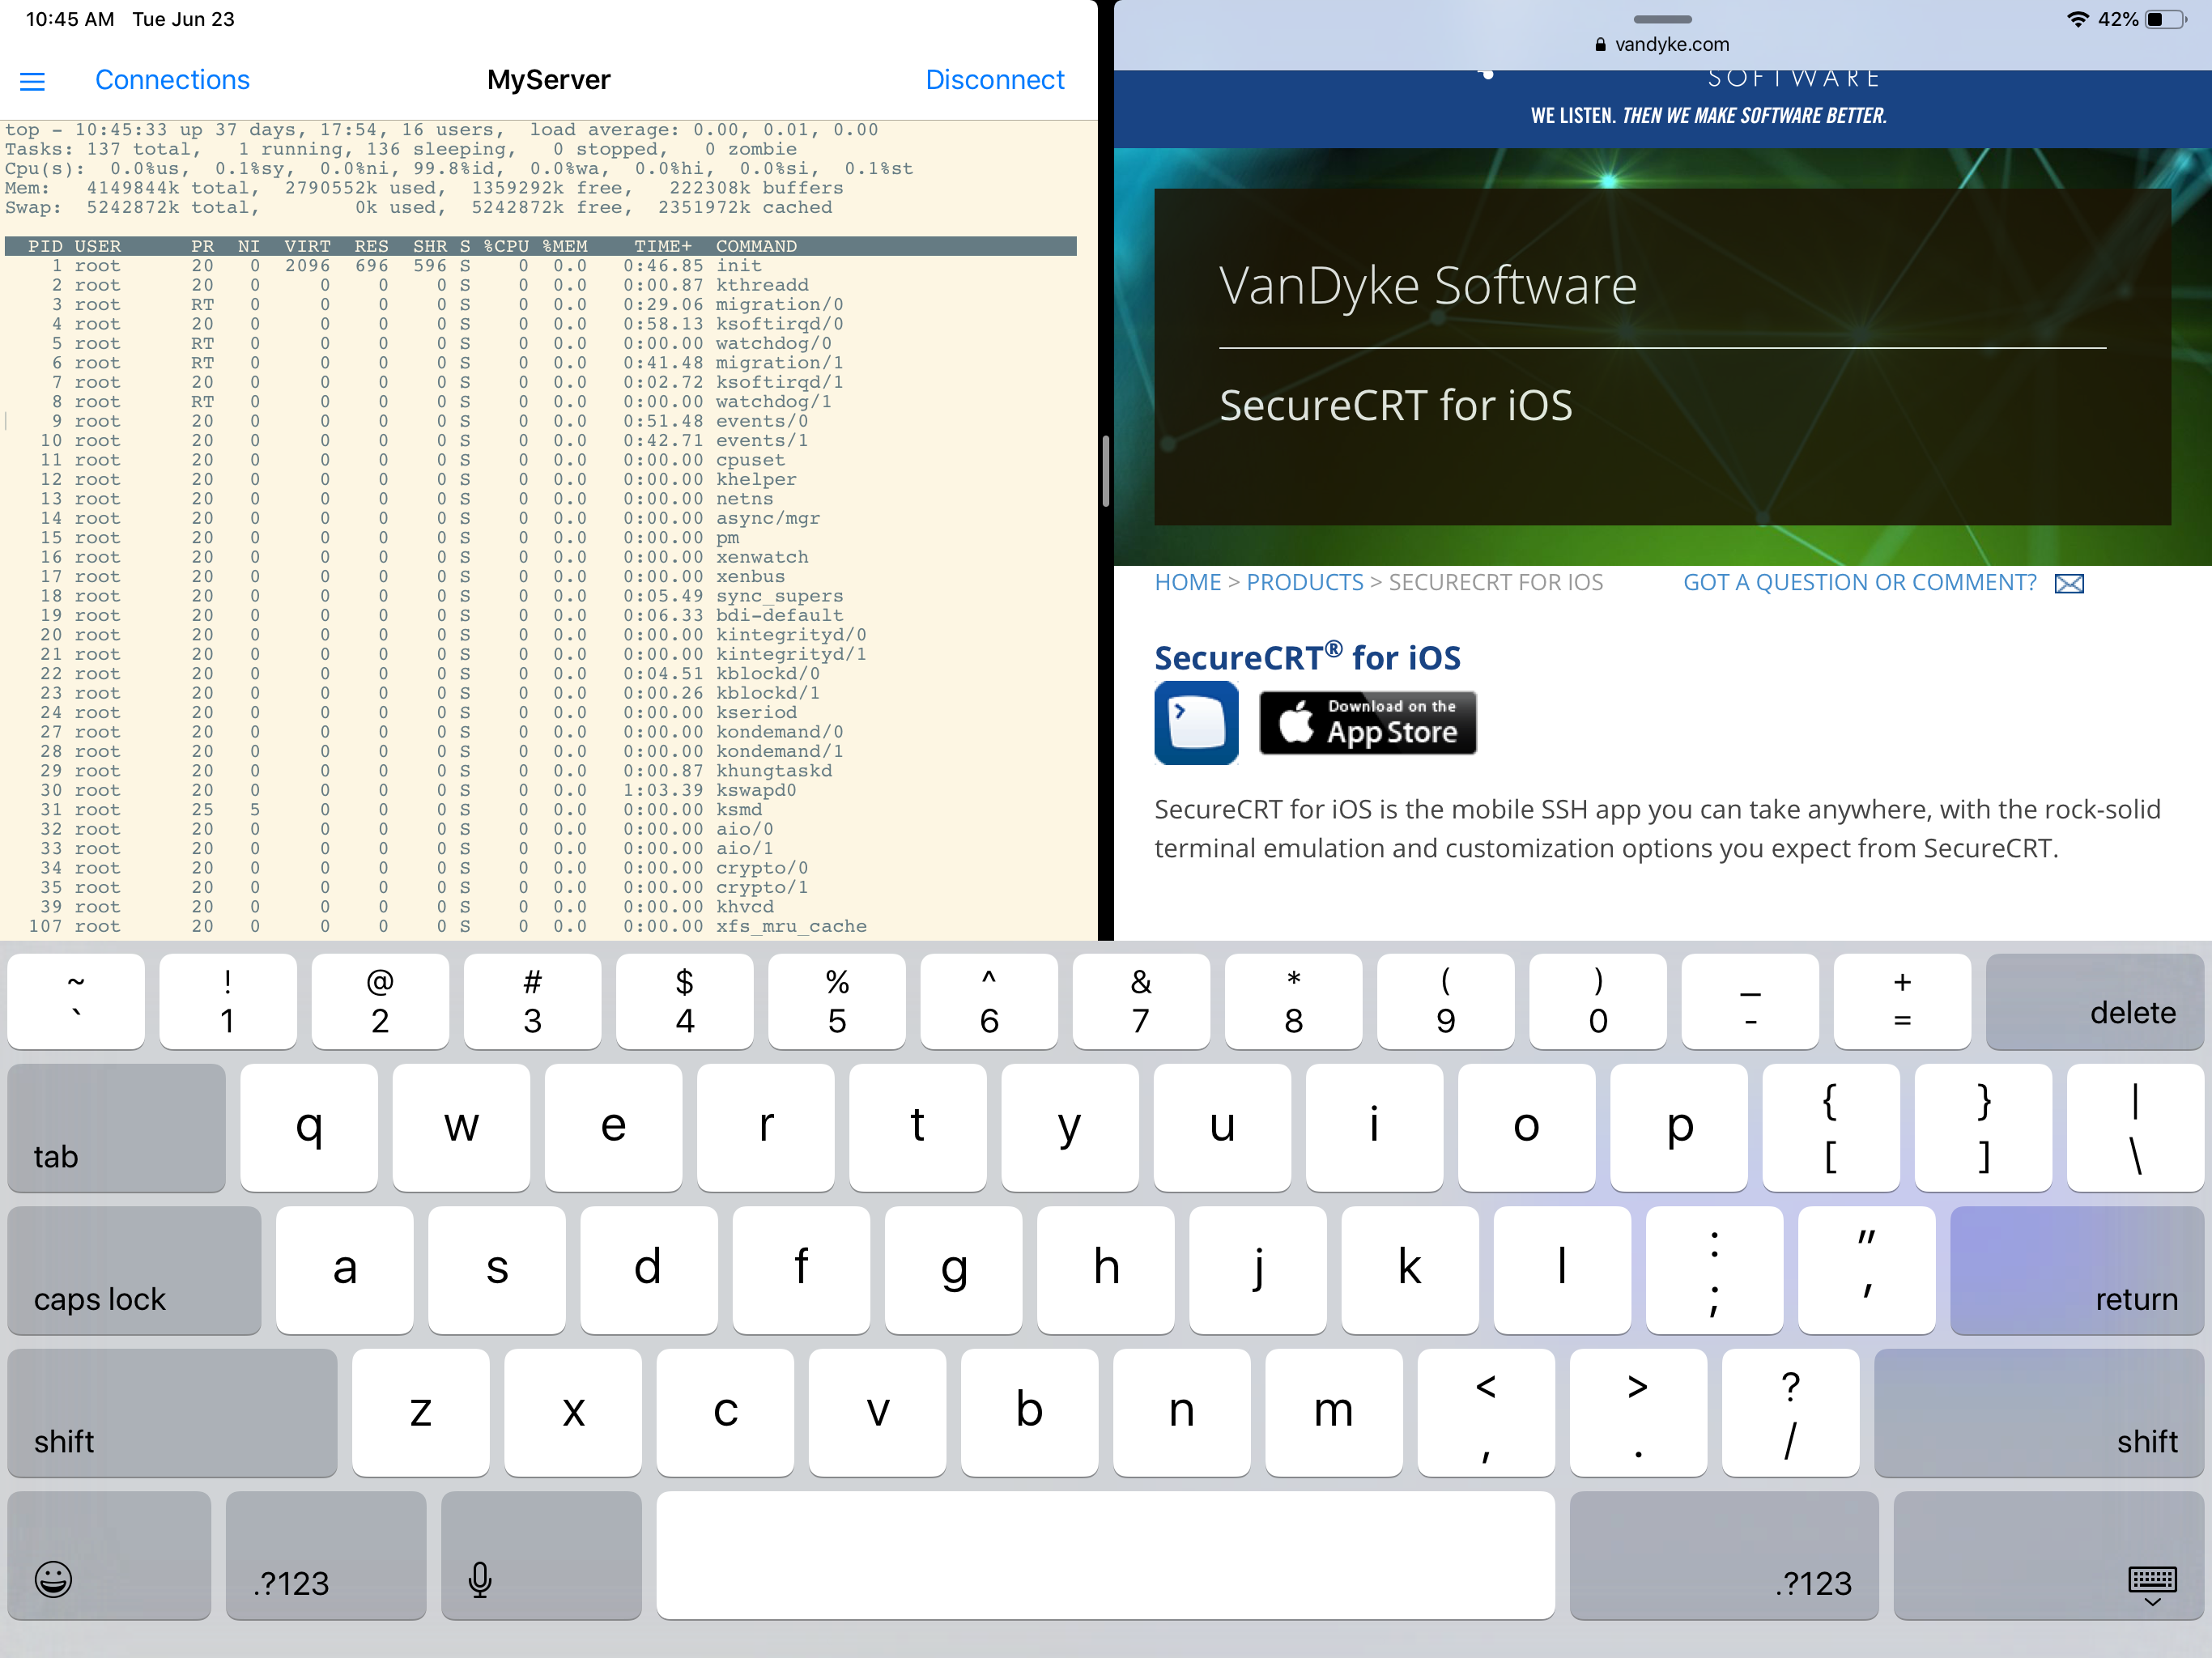 SecureCRT for iOS 2.4 in Split View